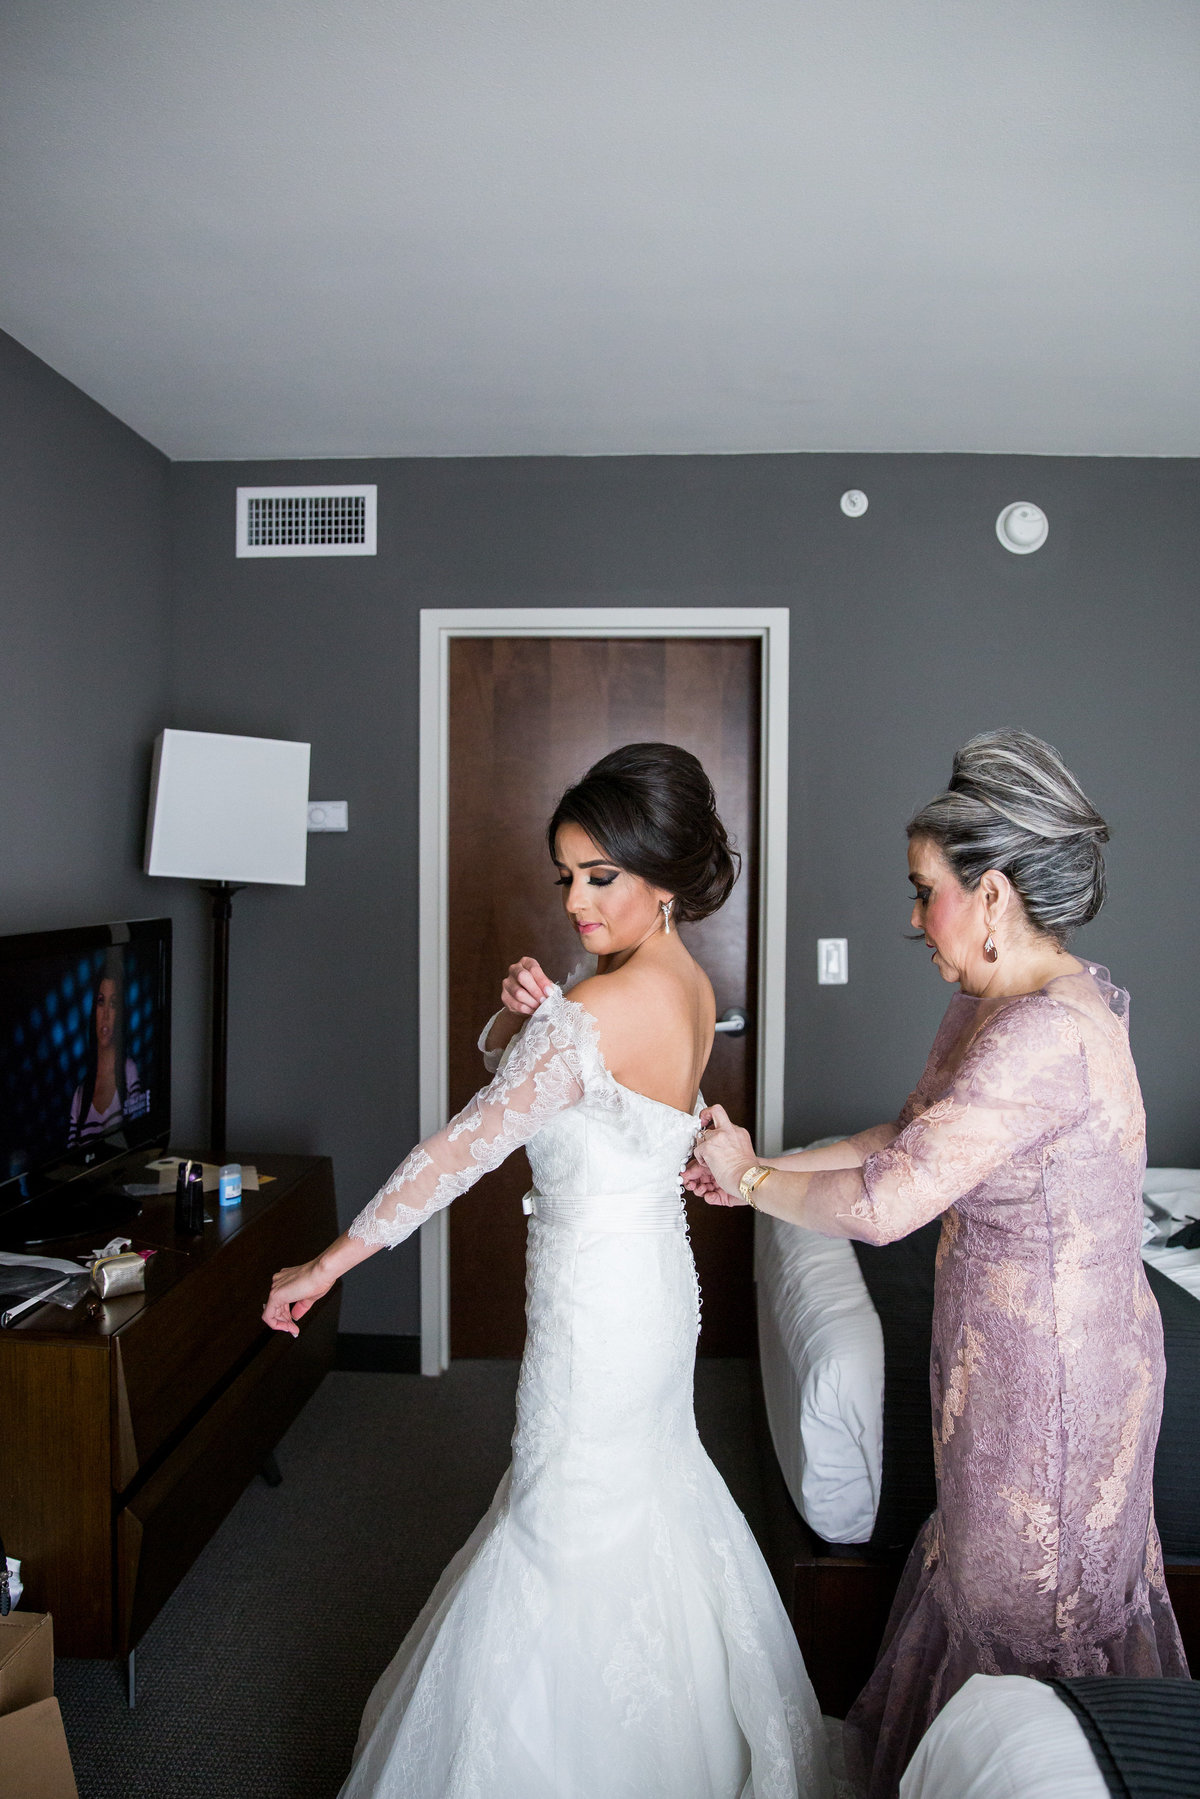 Mother of bride helps her daughter put on wedding gown before wedding ceremony at Contessa Hotel in downtown San Antonio